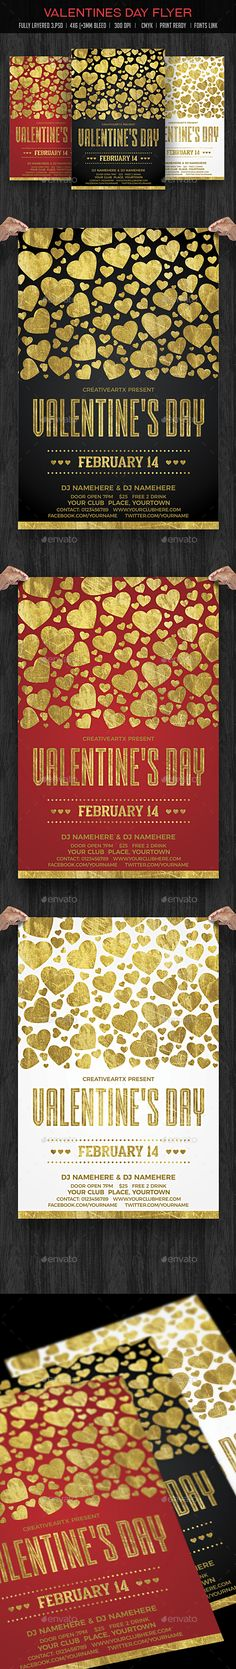 Valentines Day Flyer — Photoshop PSD #club #february • Available here → https://graphicriver.net/item/valentines-day-flyer/19272605?ref=pxcr